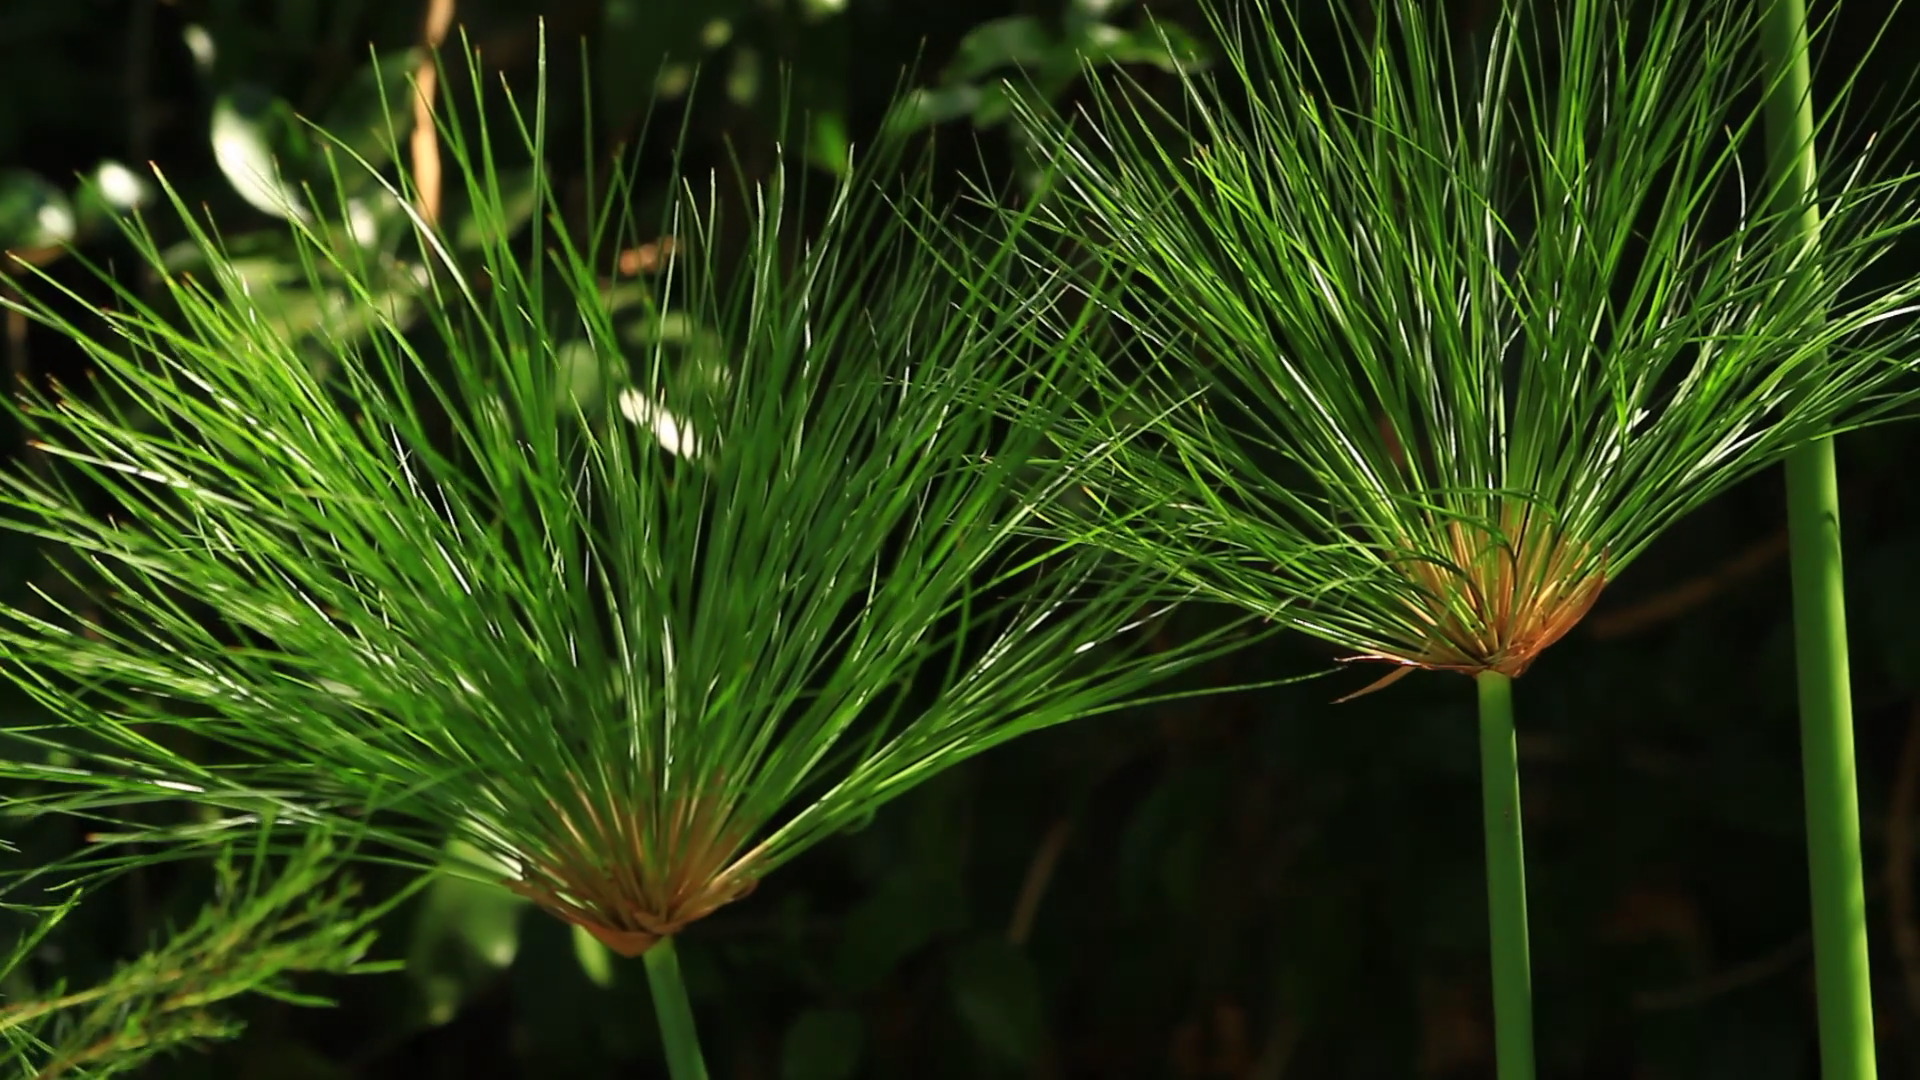 close up image of papyrus plant, native to the Nile River in Egypt